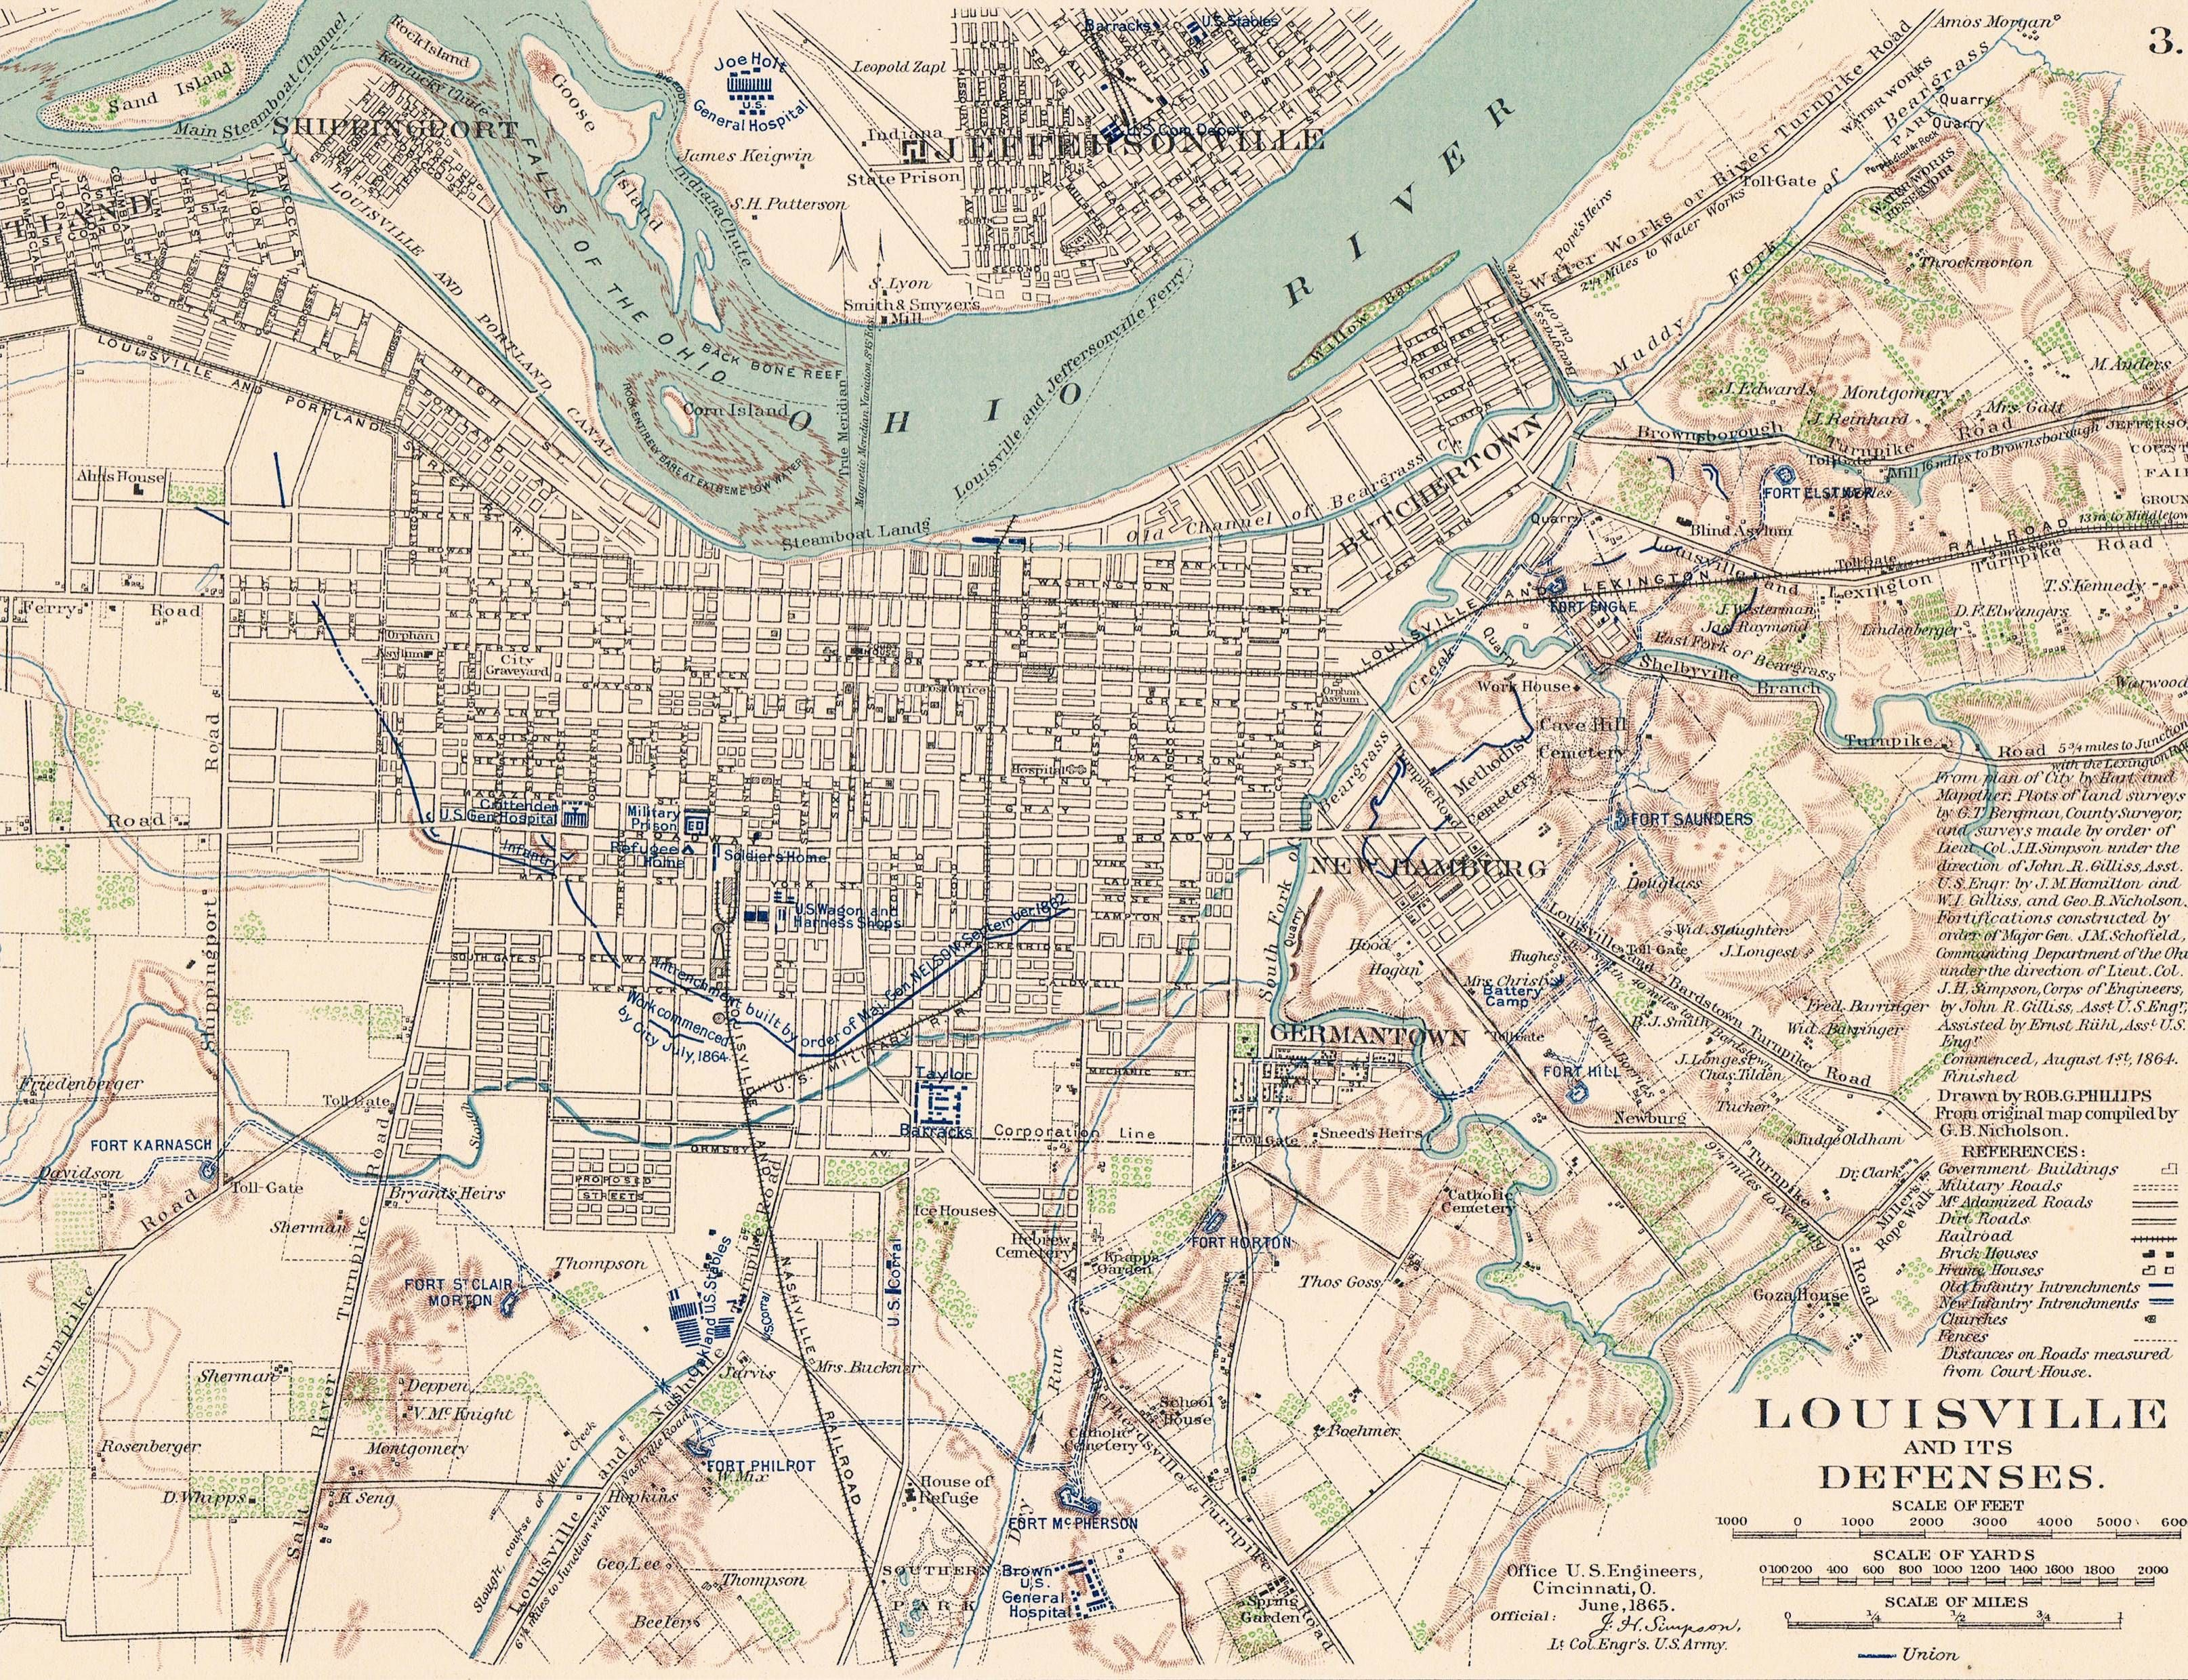 Map of Louisville Ky. June, 1865 Showing Civil War Forts ...